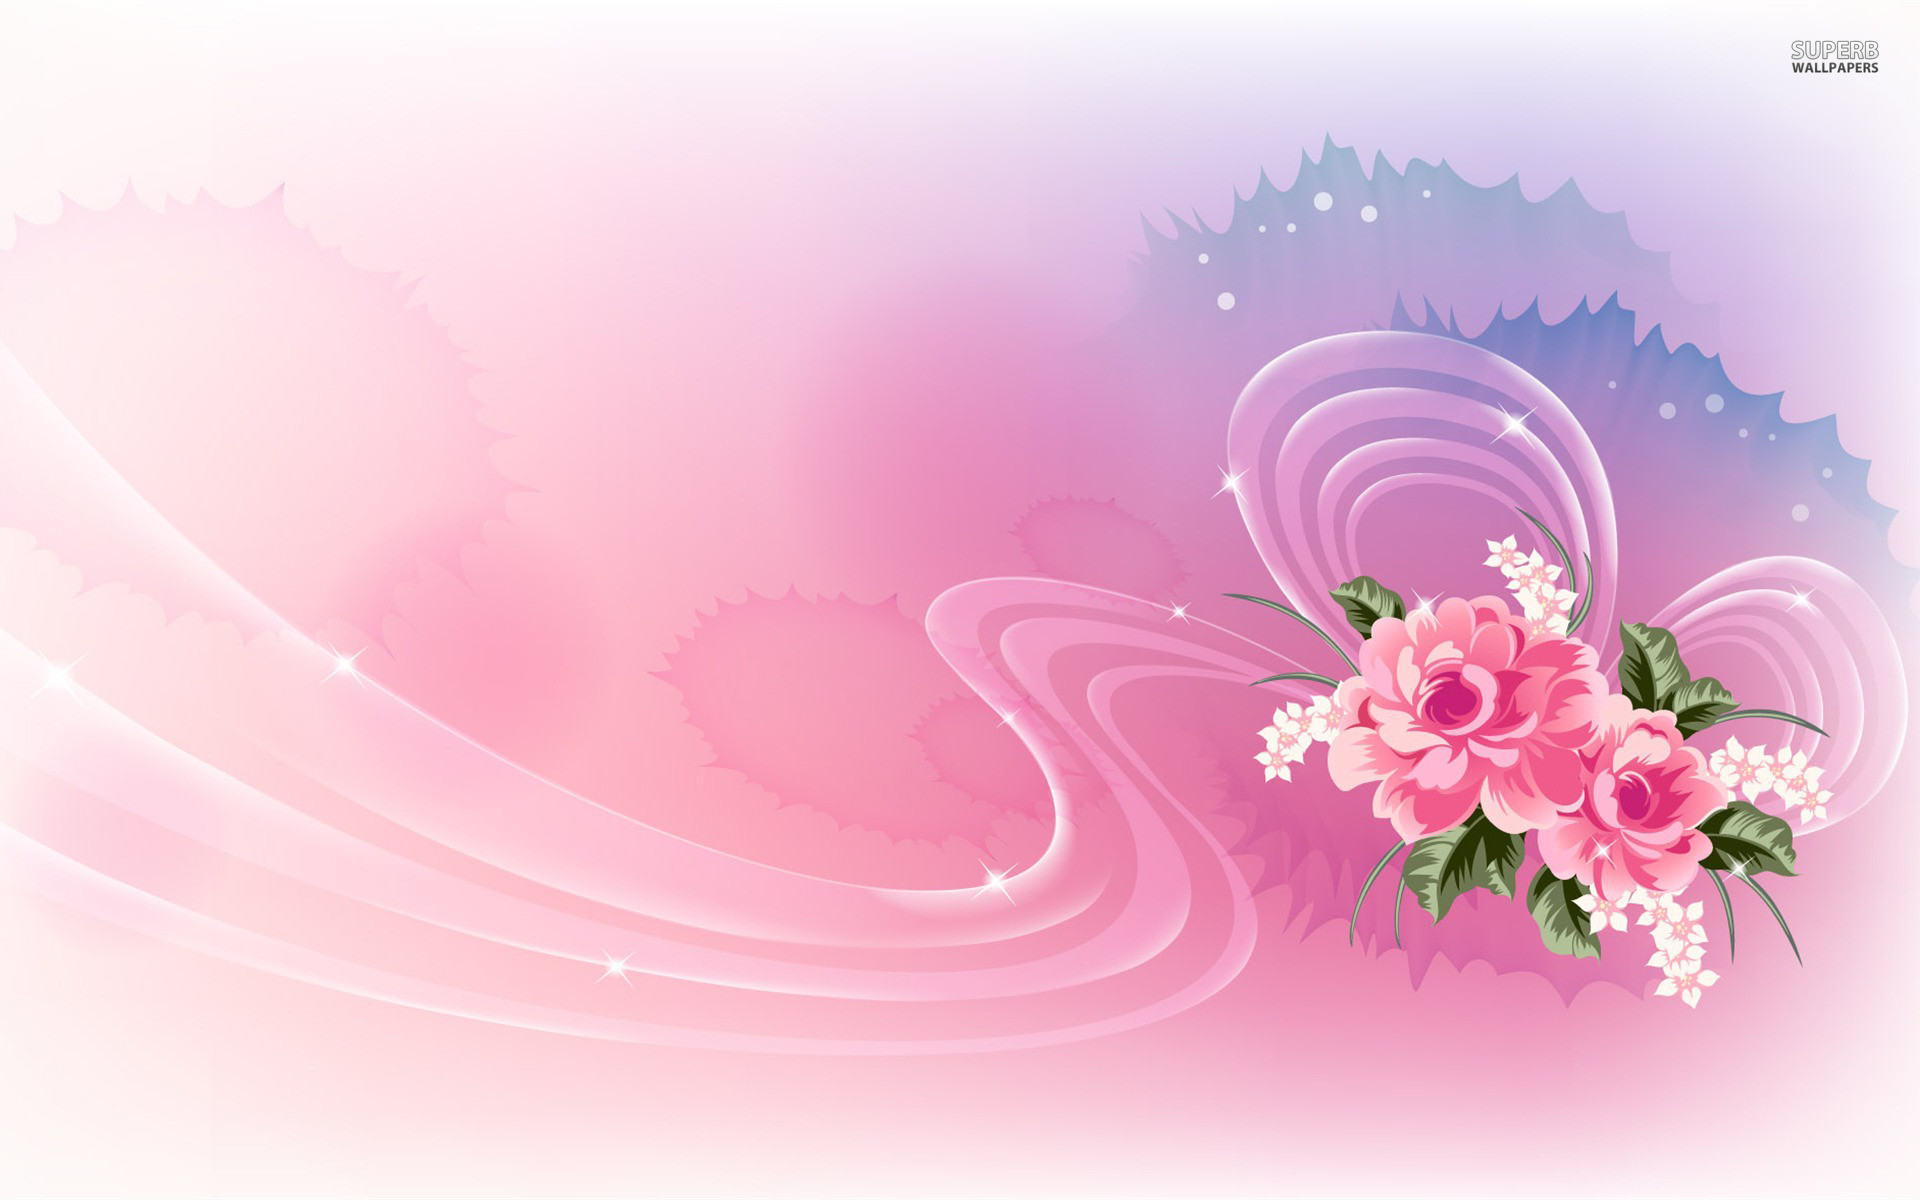 Pink Roses & Lucent Ribbon wallpapers   Pink Roses & Lucent Ribbon .